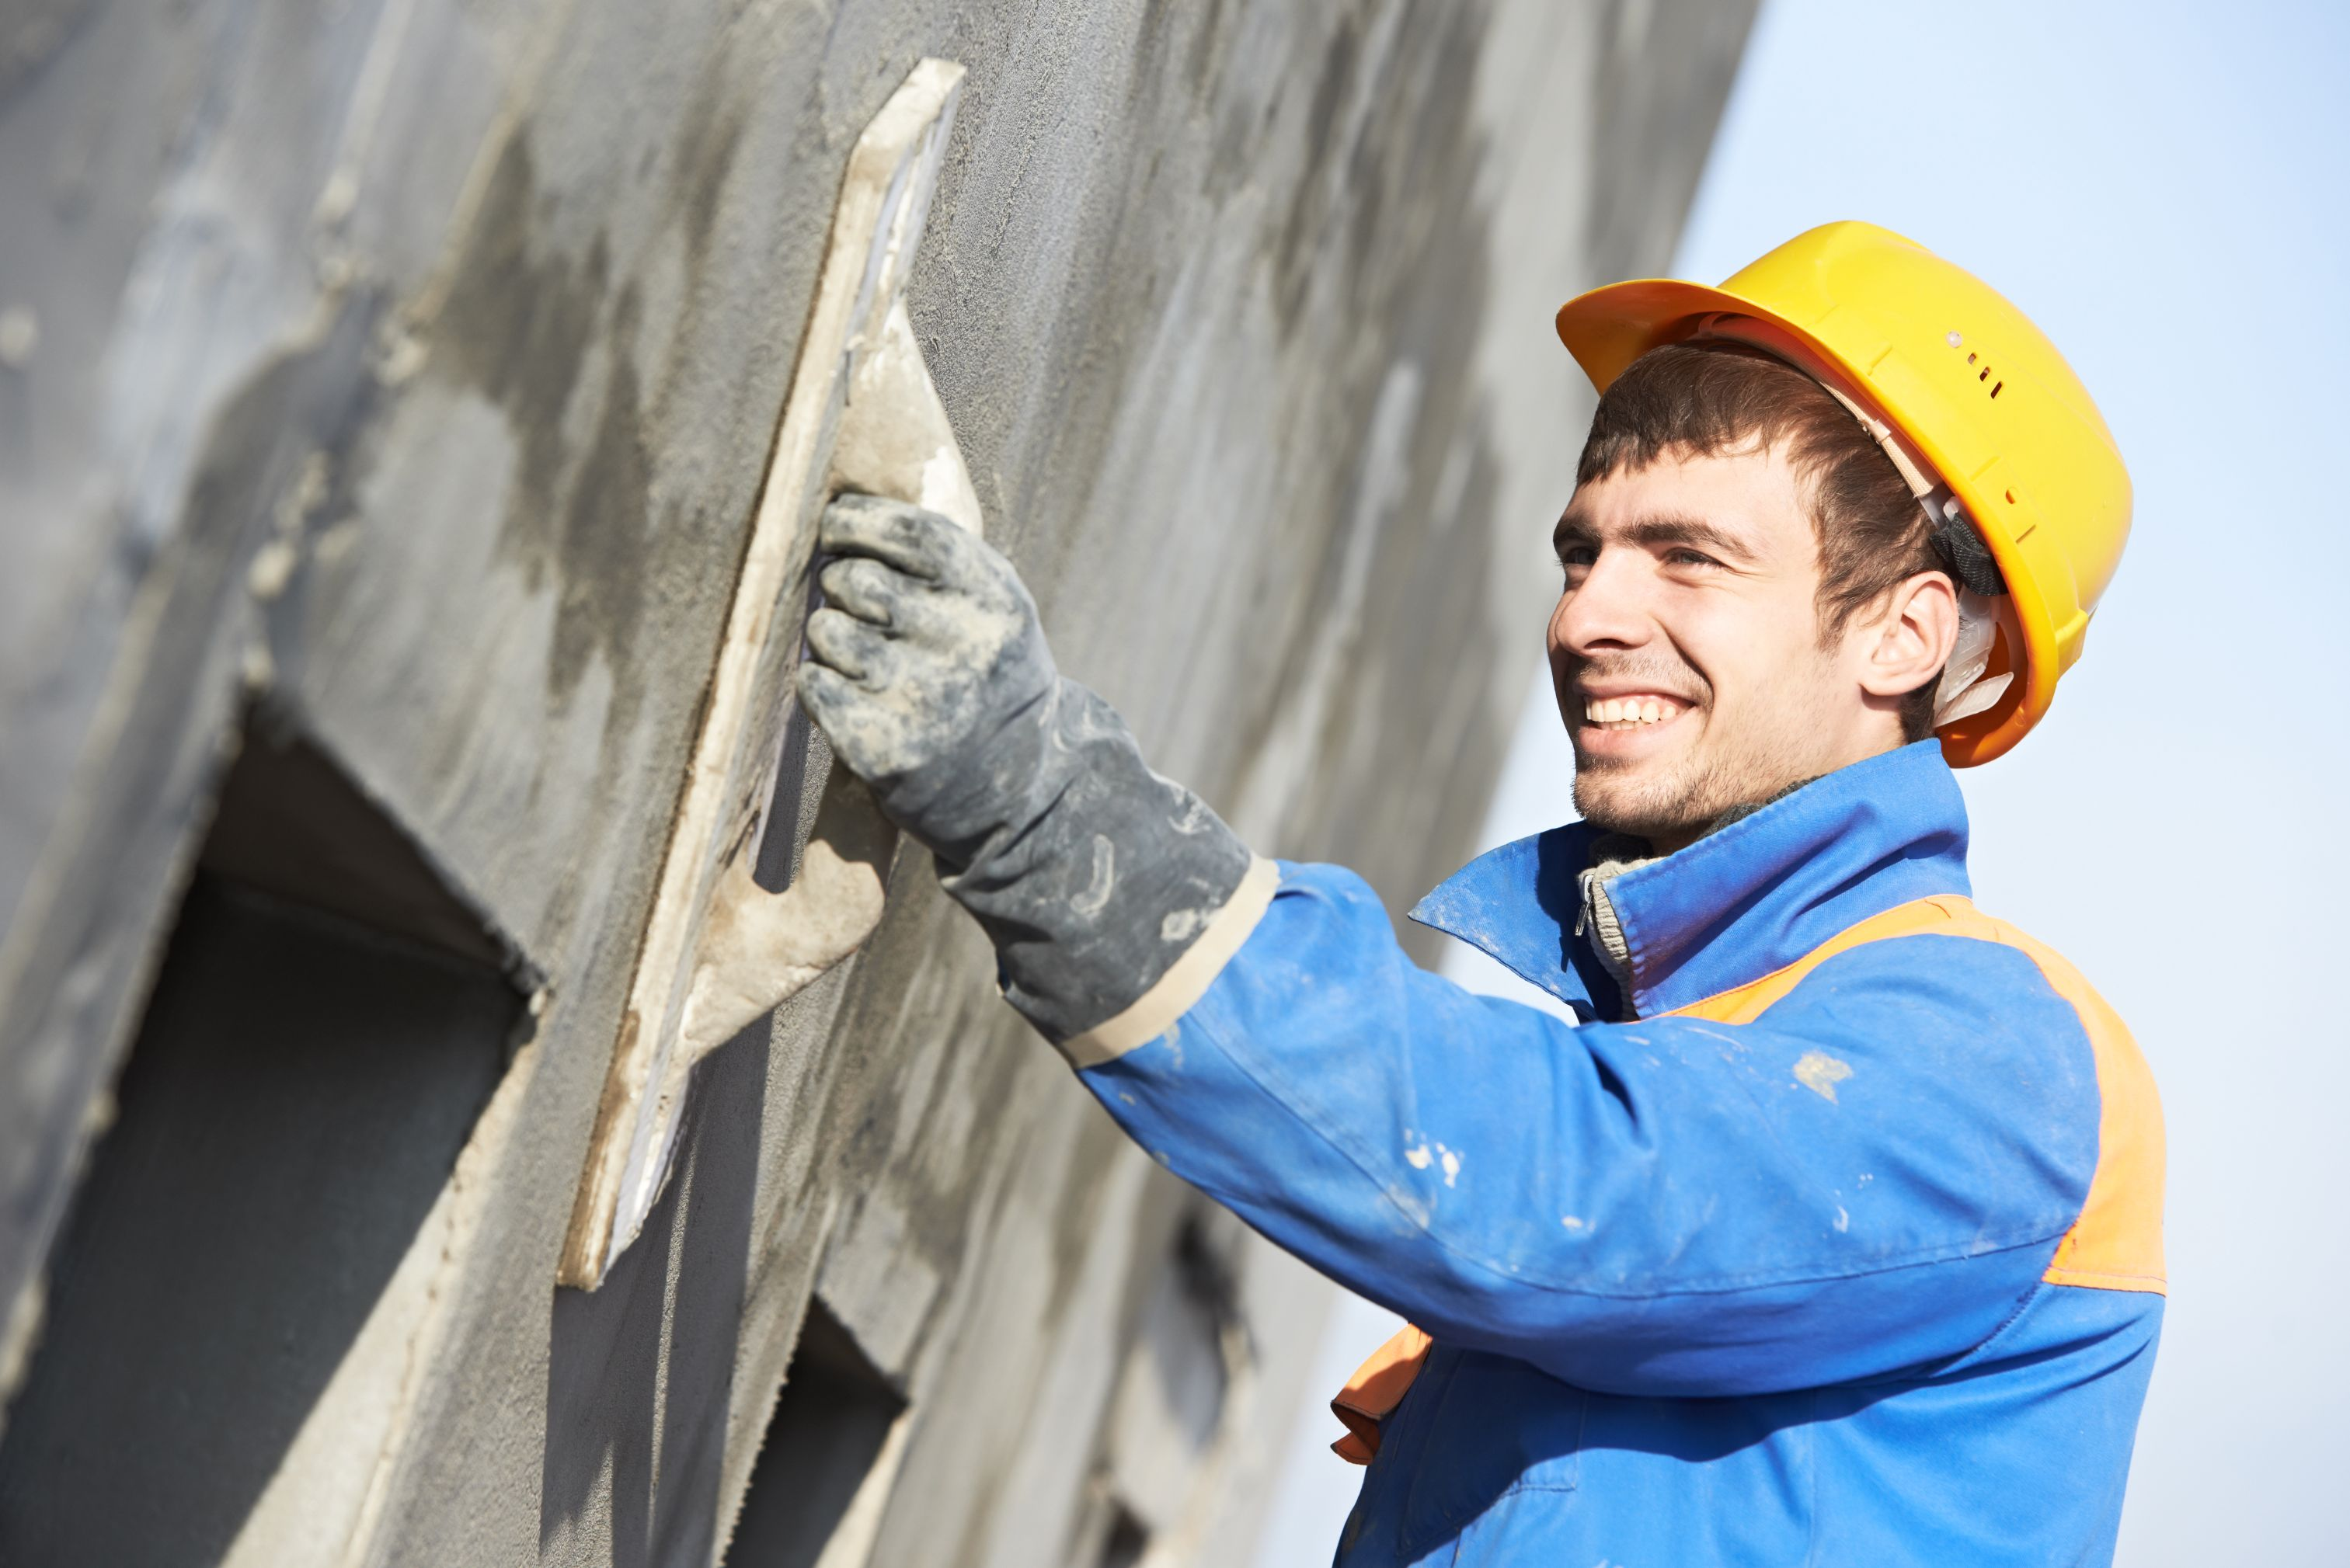 How to Find and Hire Local Plastering Contractors | SmartGuy